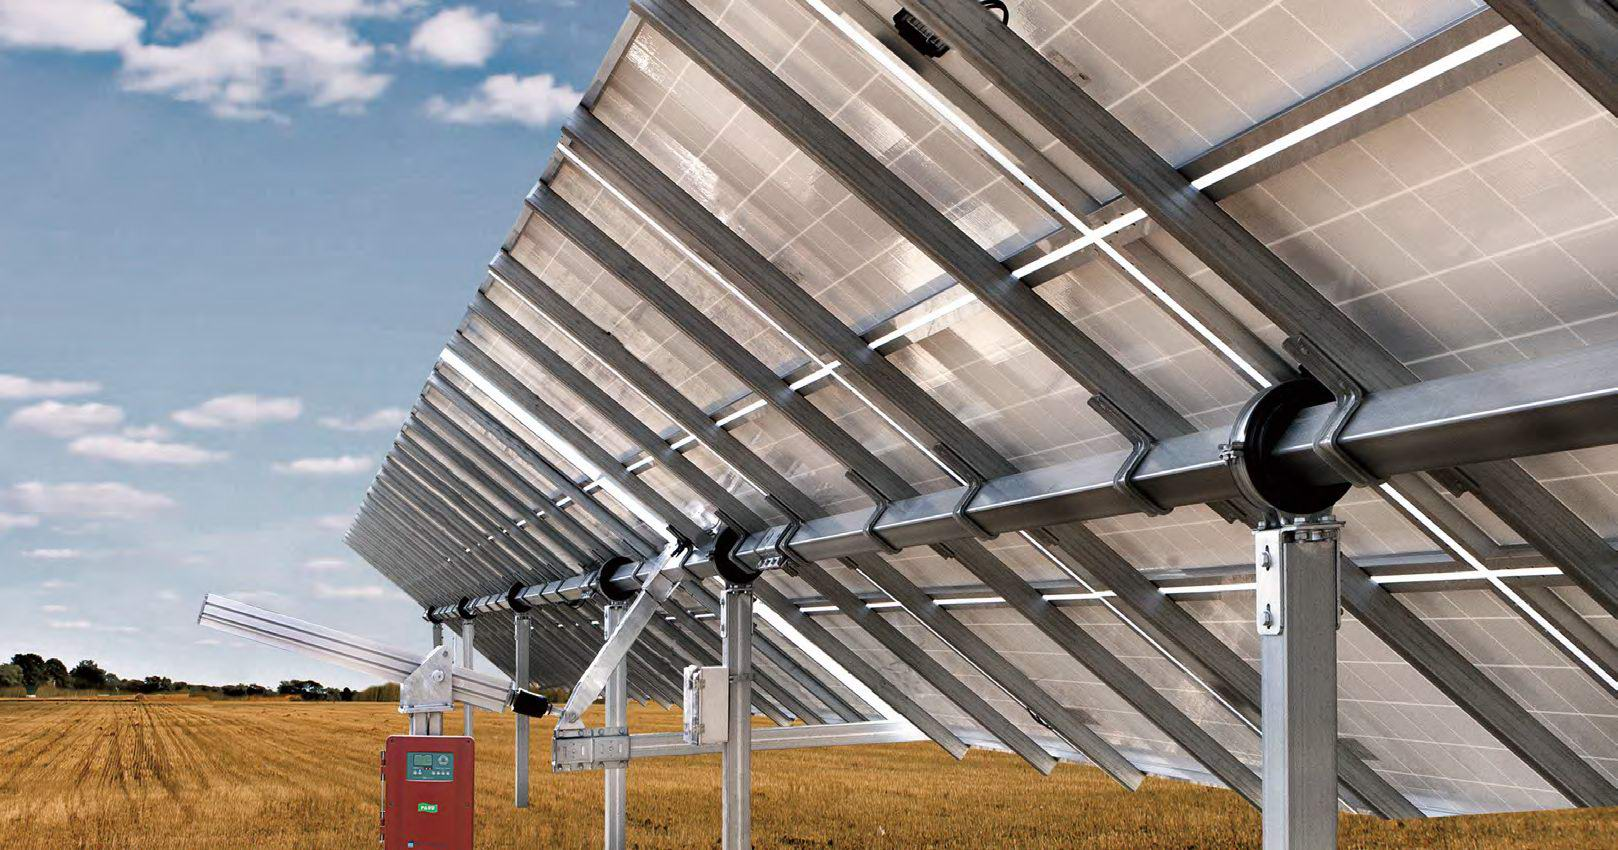 Squeezing Solar Tracker Innovation Boosts Market